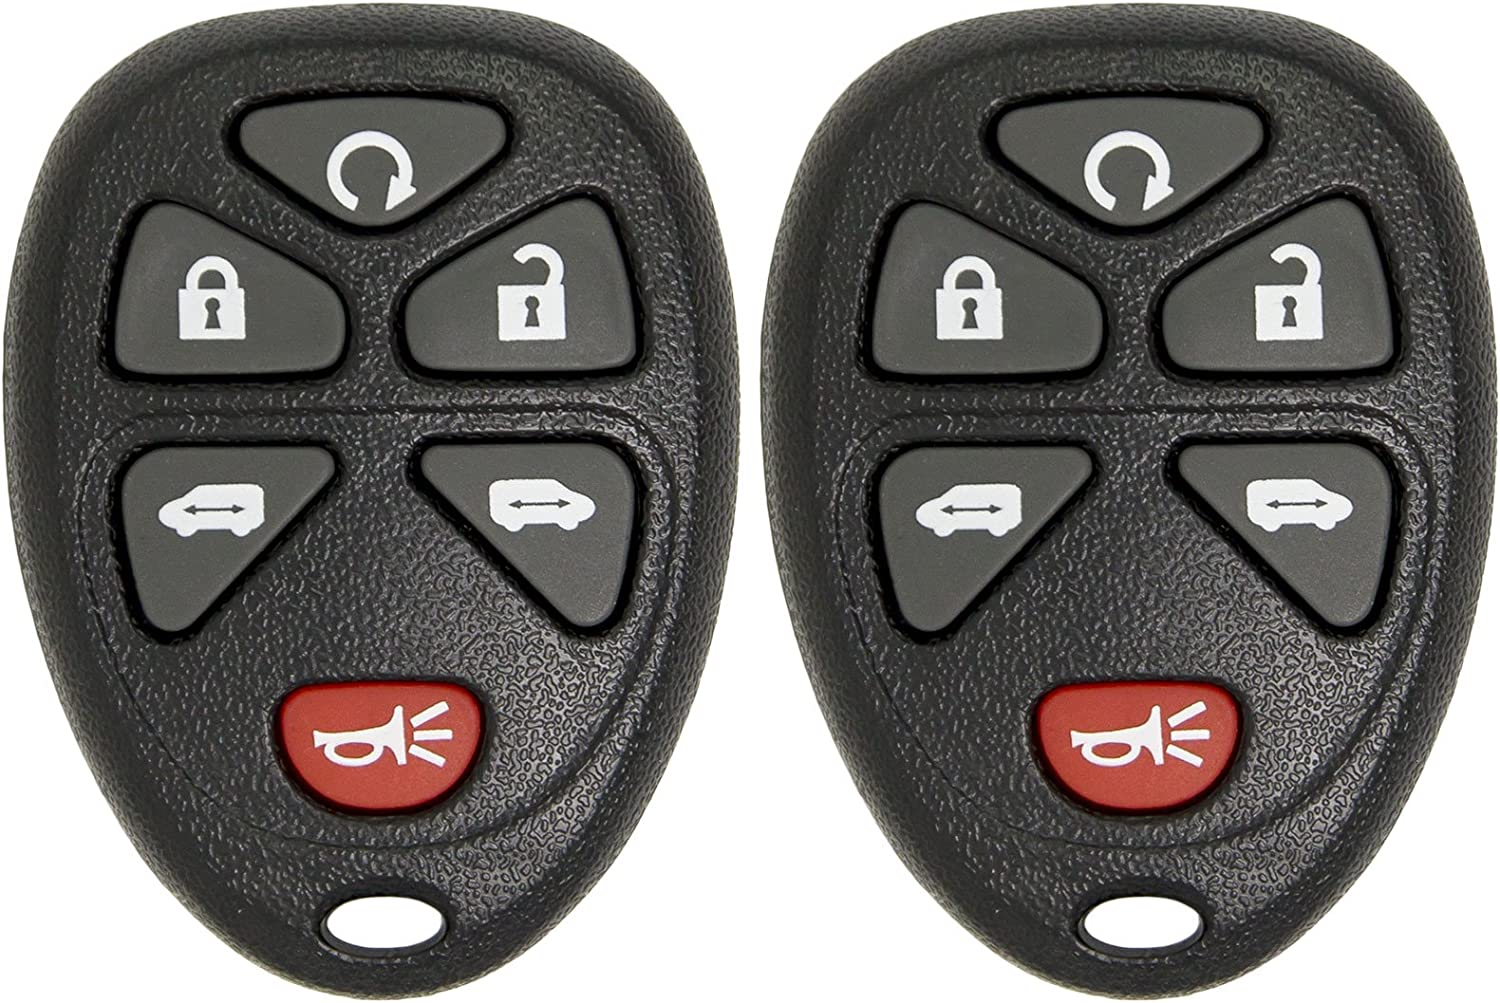 Keyless2Go Remote Keyless Entry Car Key Fob Replacement for GM Vehicles KOBGT04A 15114376-2 Pack